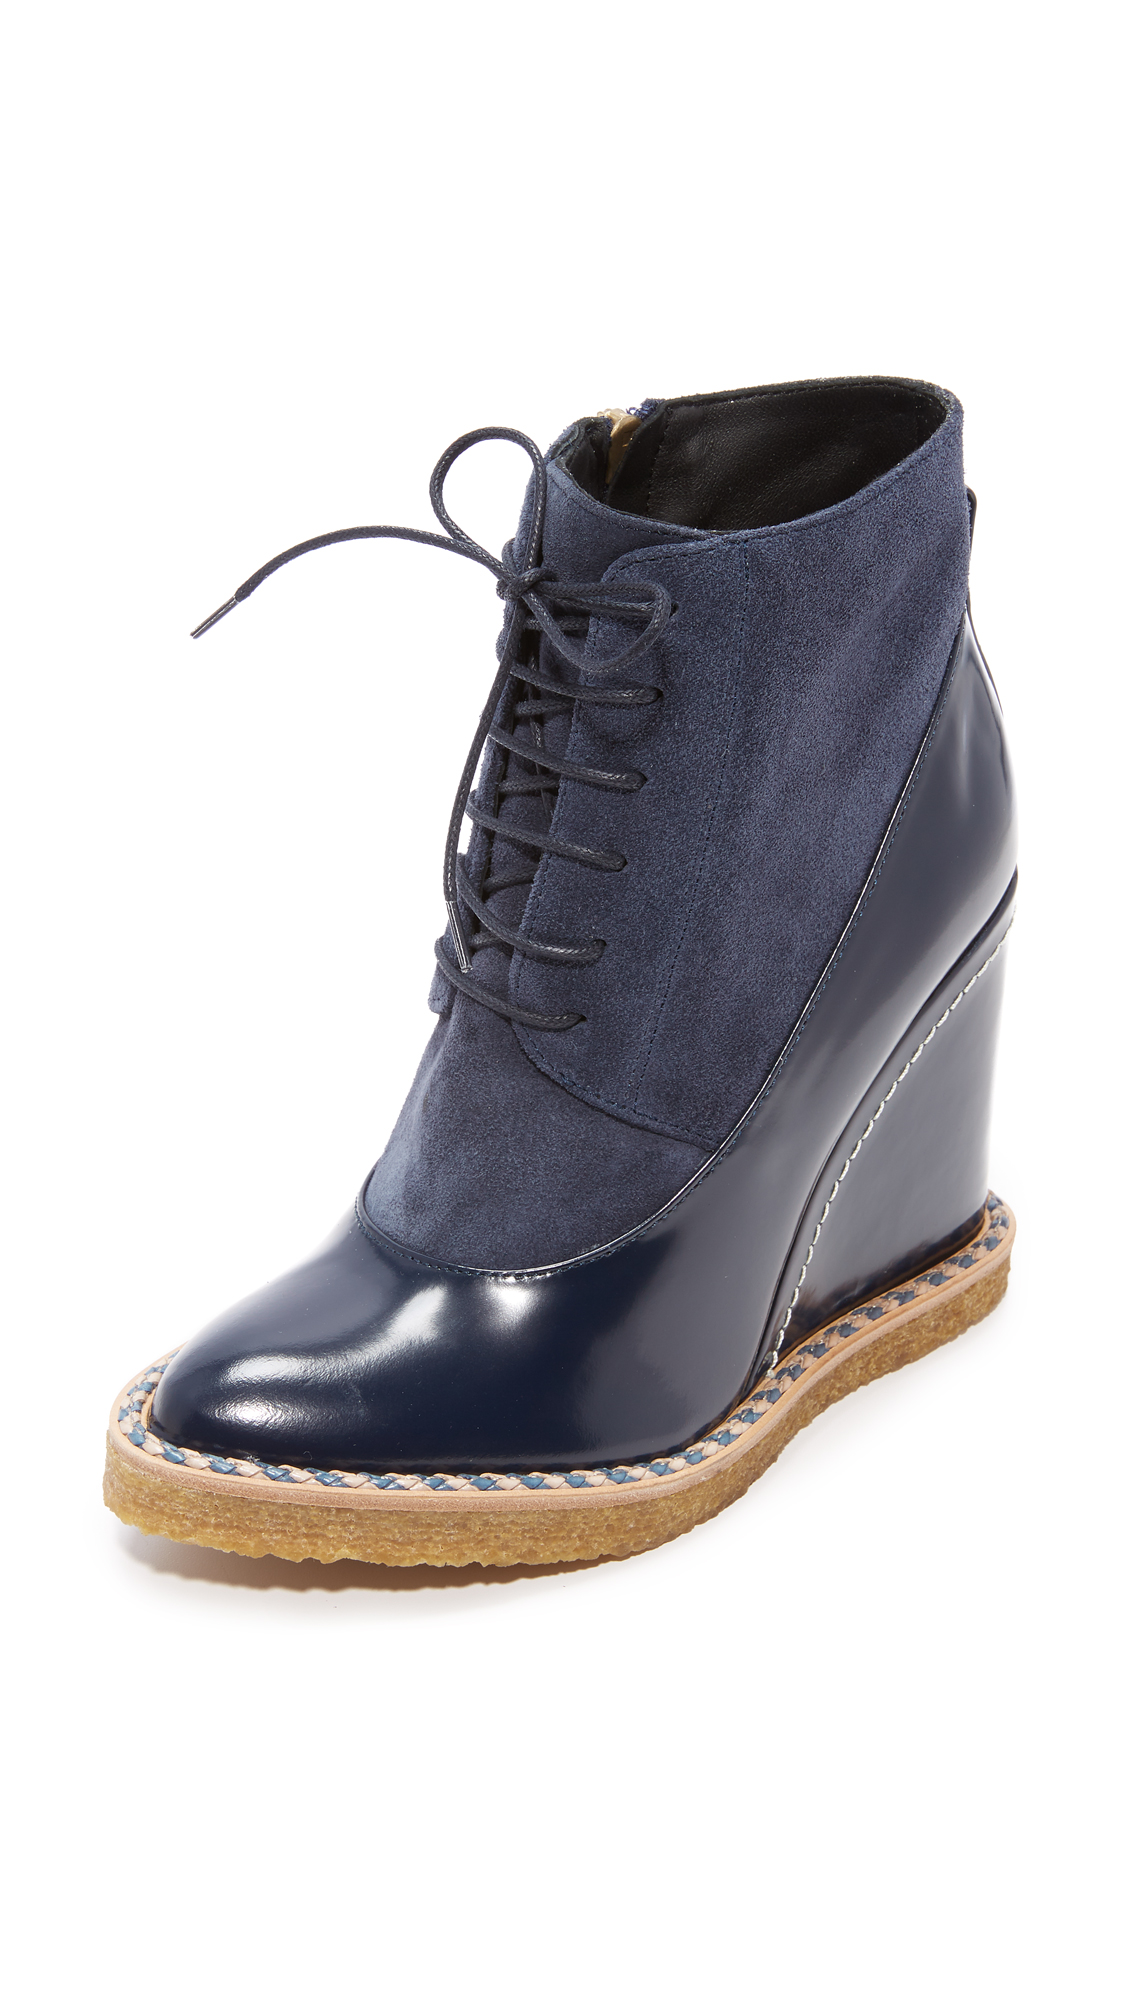 Paloma Barcelo Aspen Wedge Booties - Navy